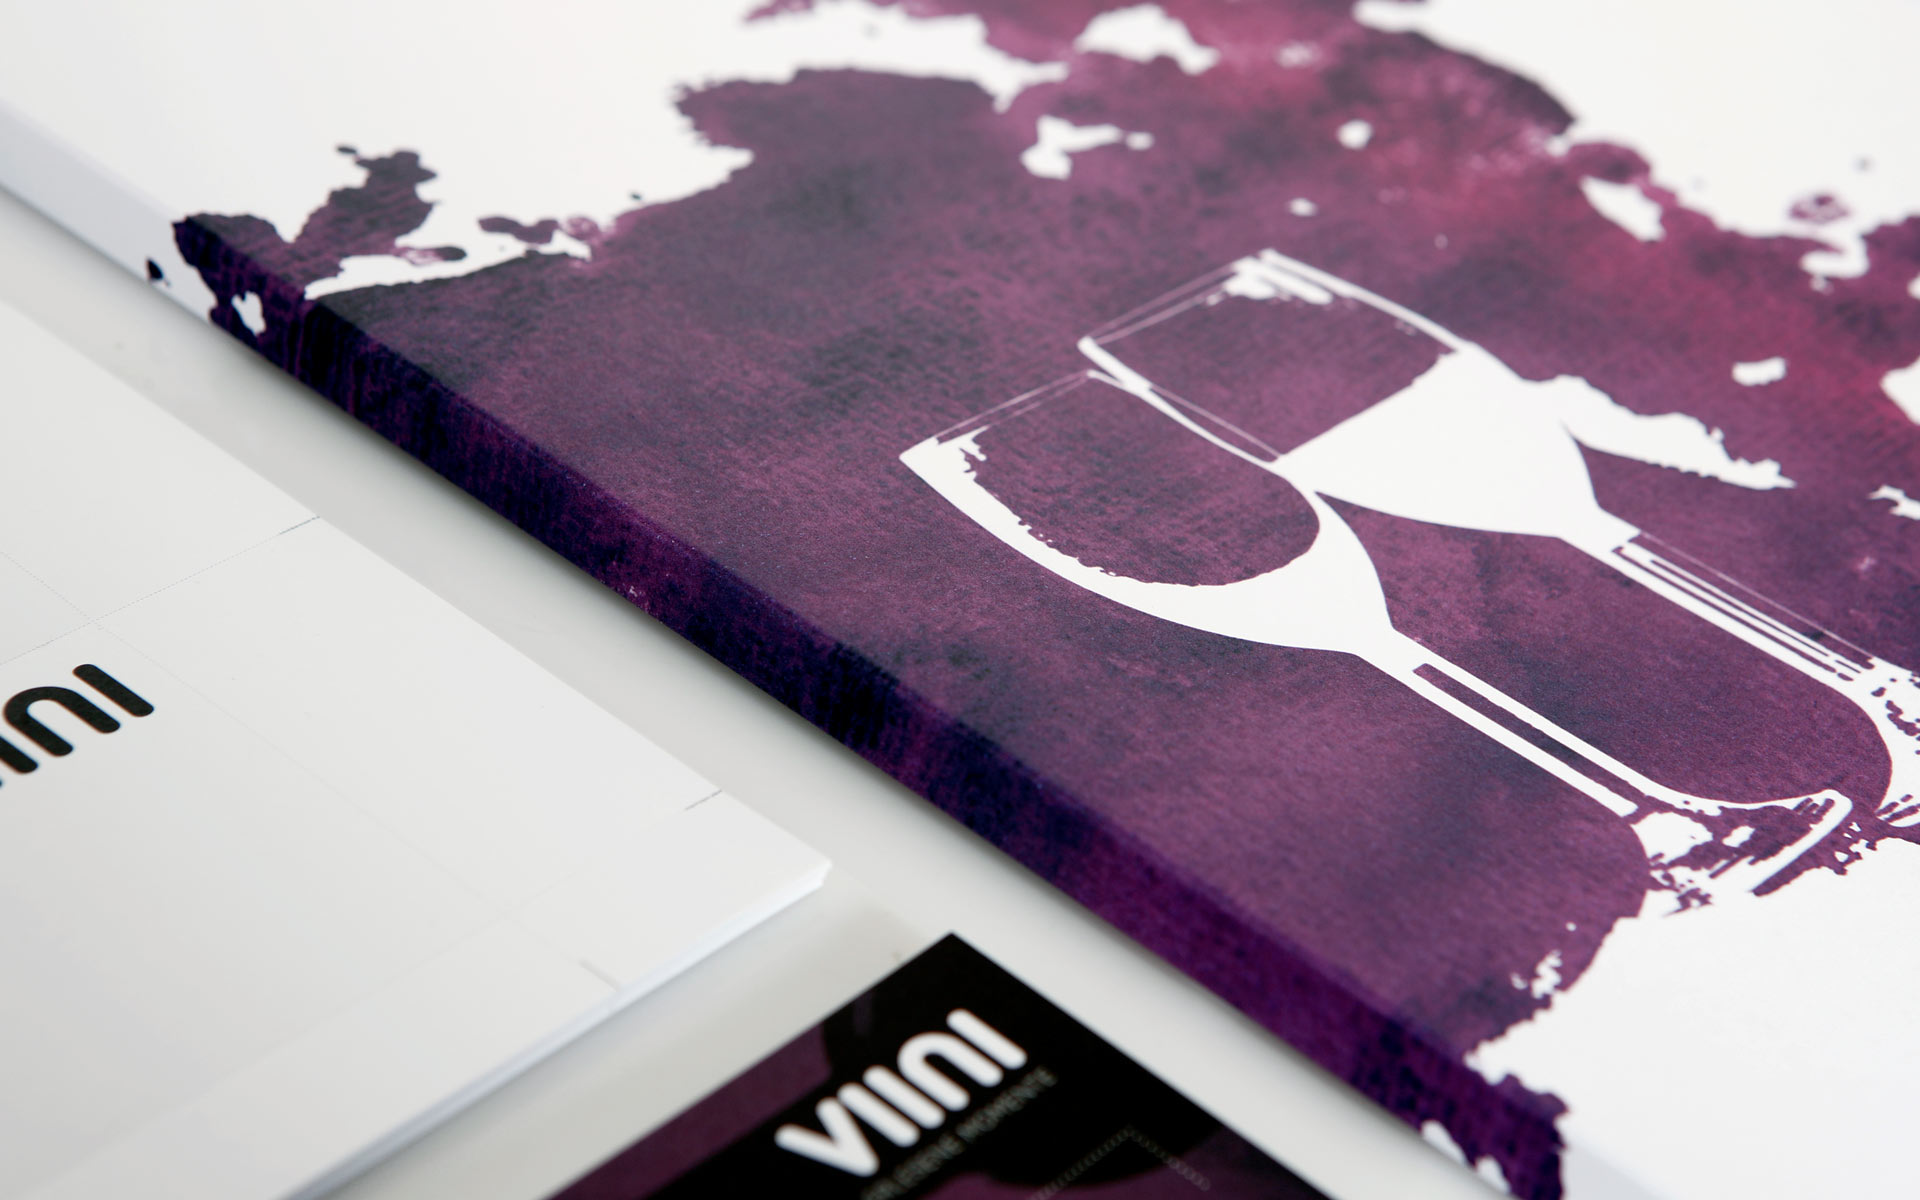 VIINI Brand Identity, Corporate Design, Pressefolder, Detail